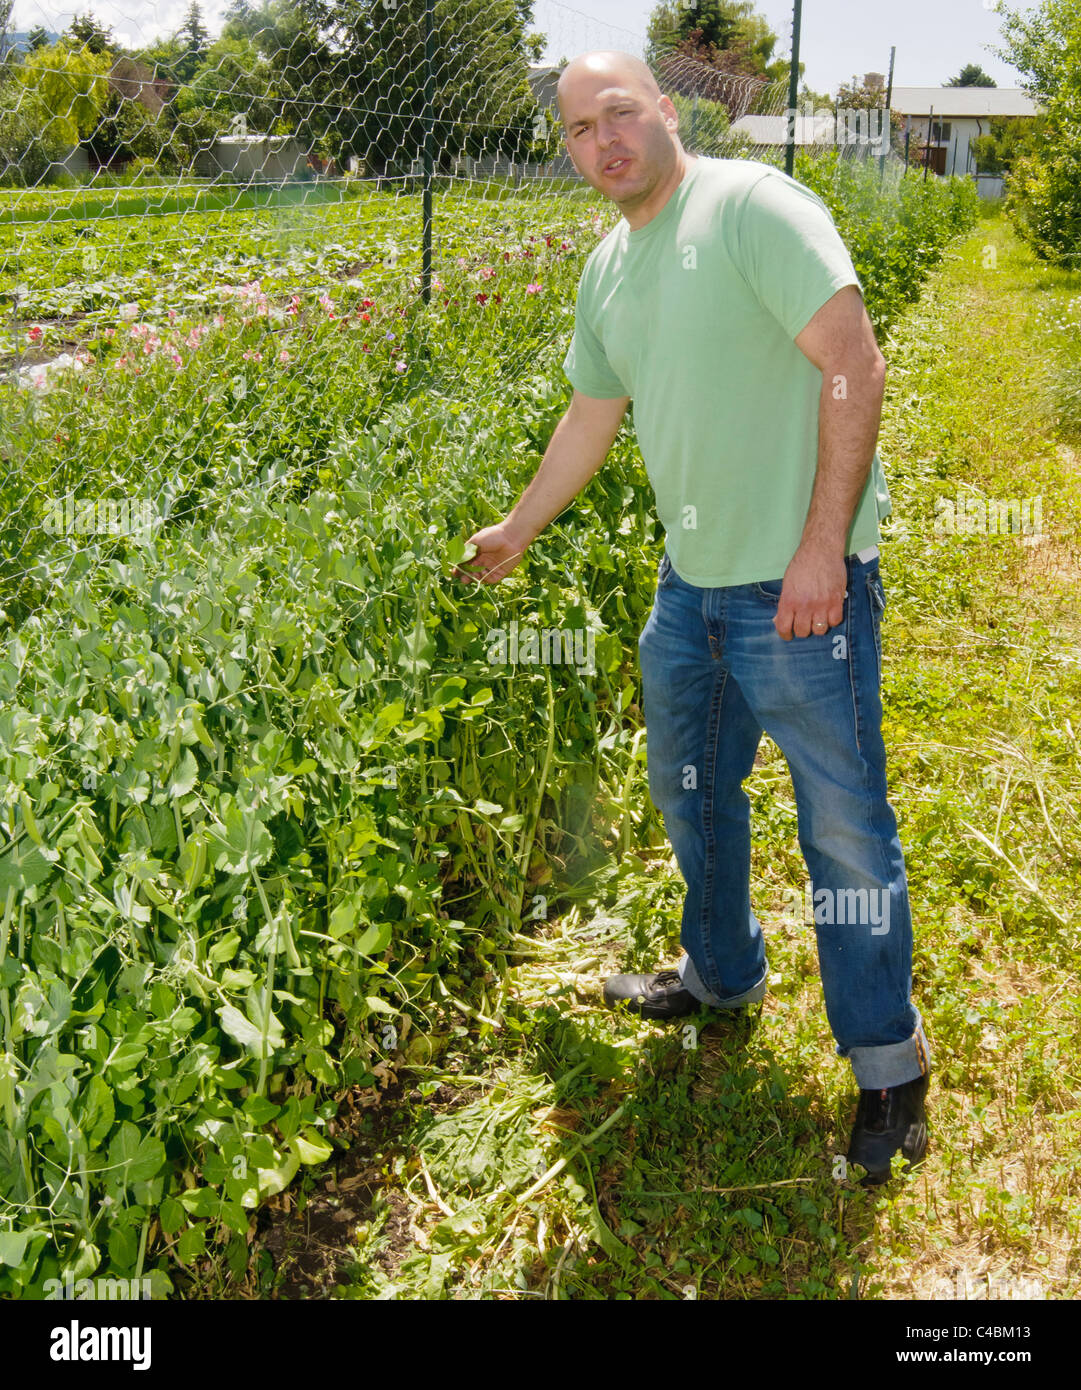 Local restauranteur checks the peas at an organic farm in Missoula, Montana. His pizzas are made with locally grown - Stock Image